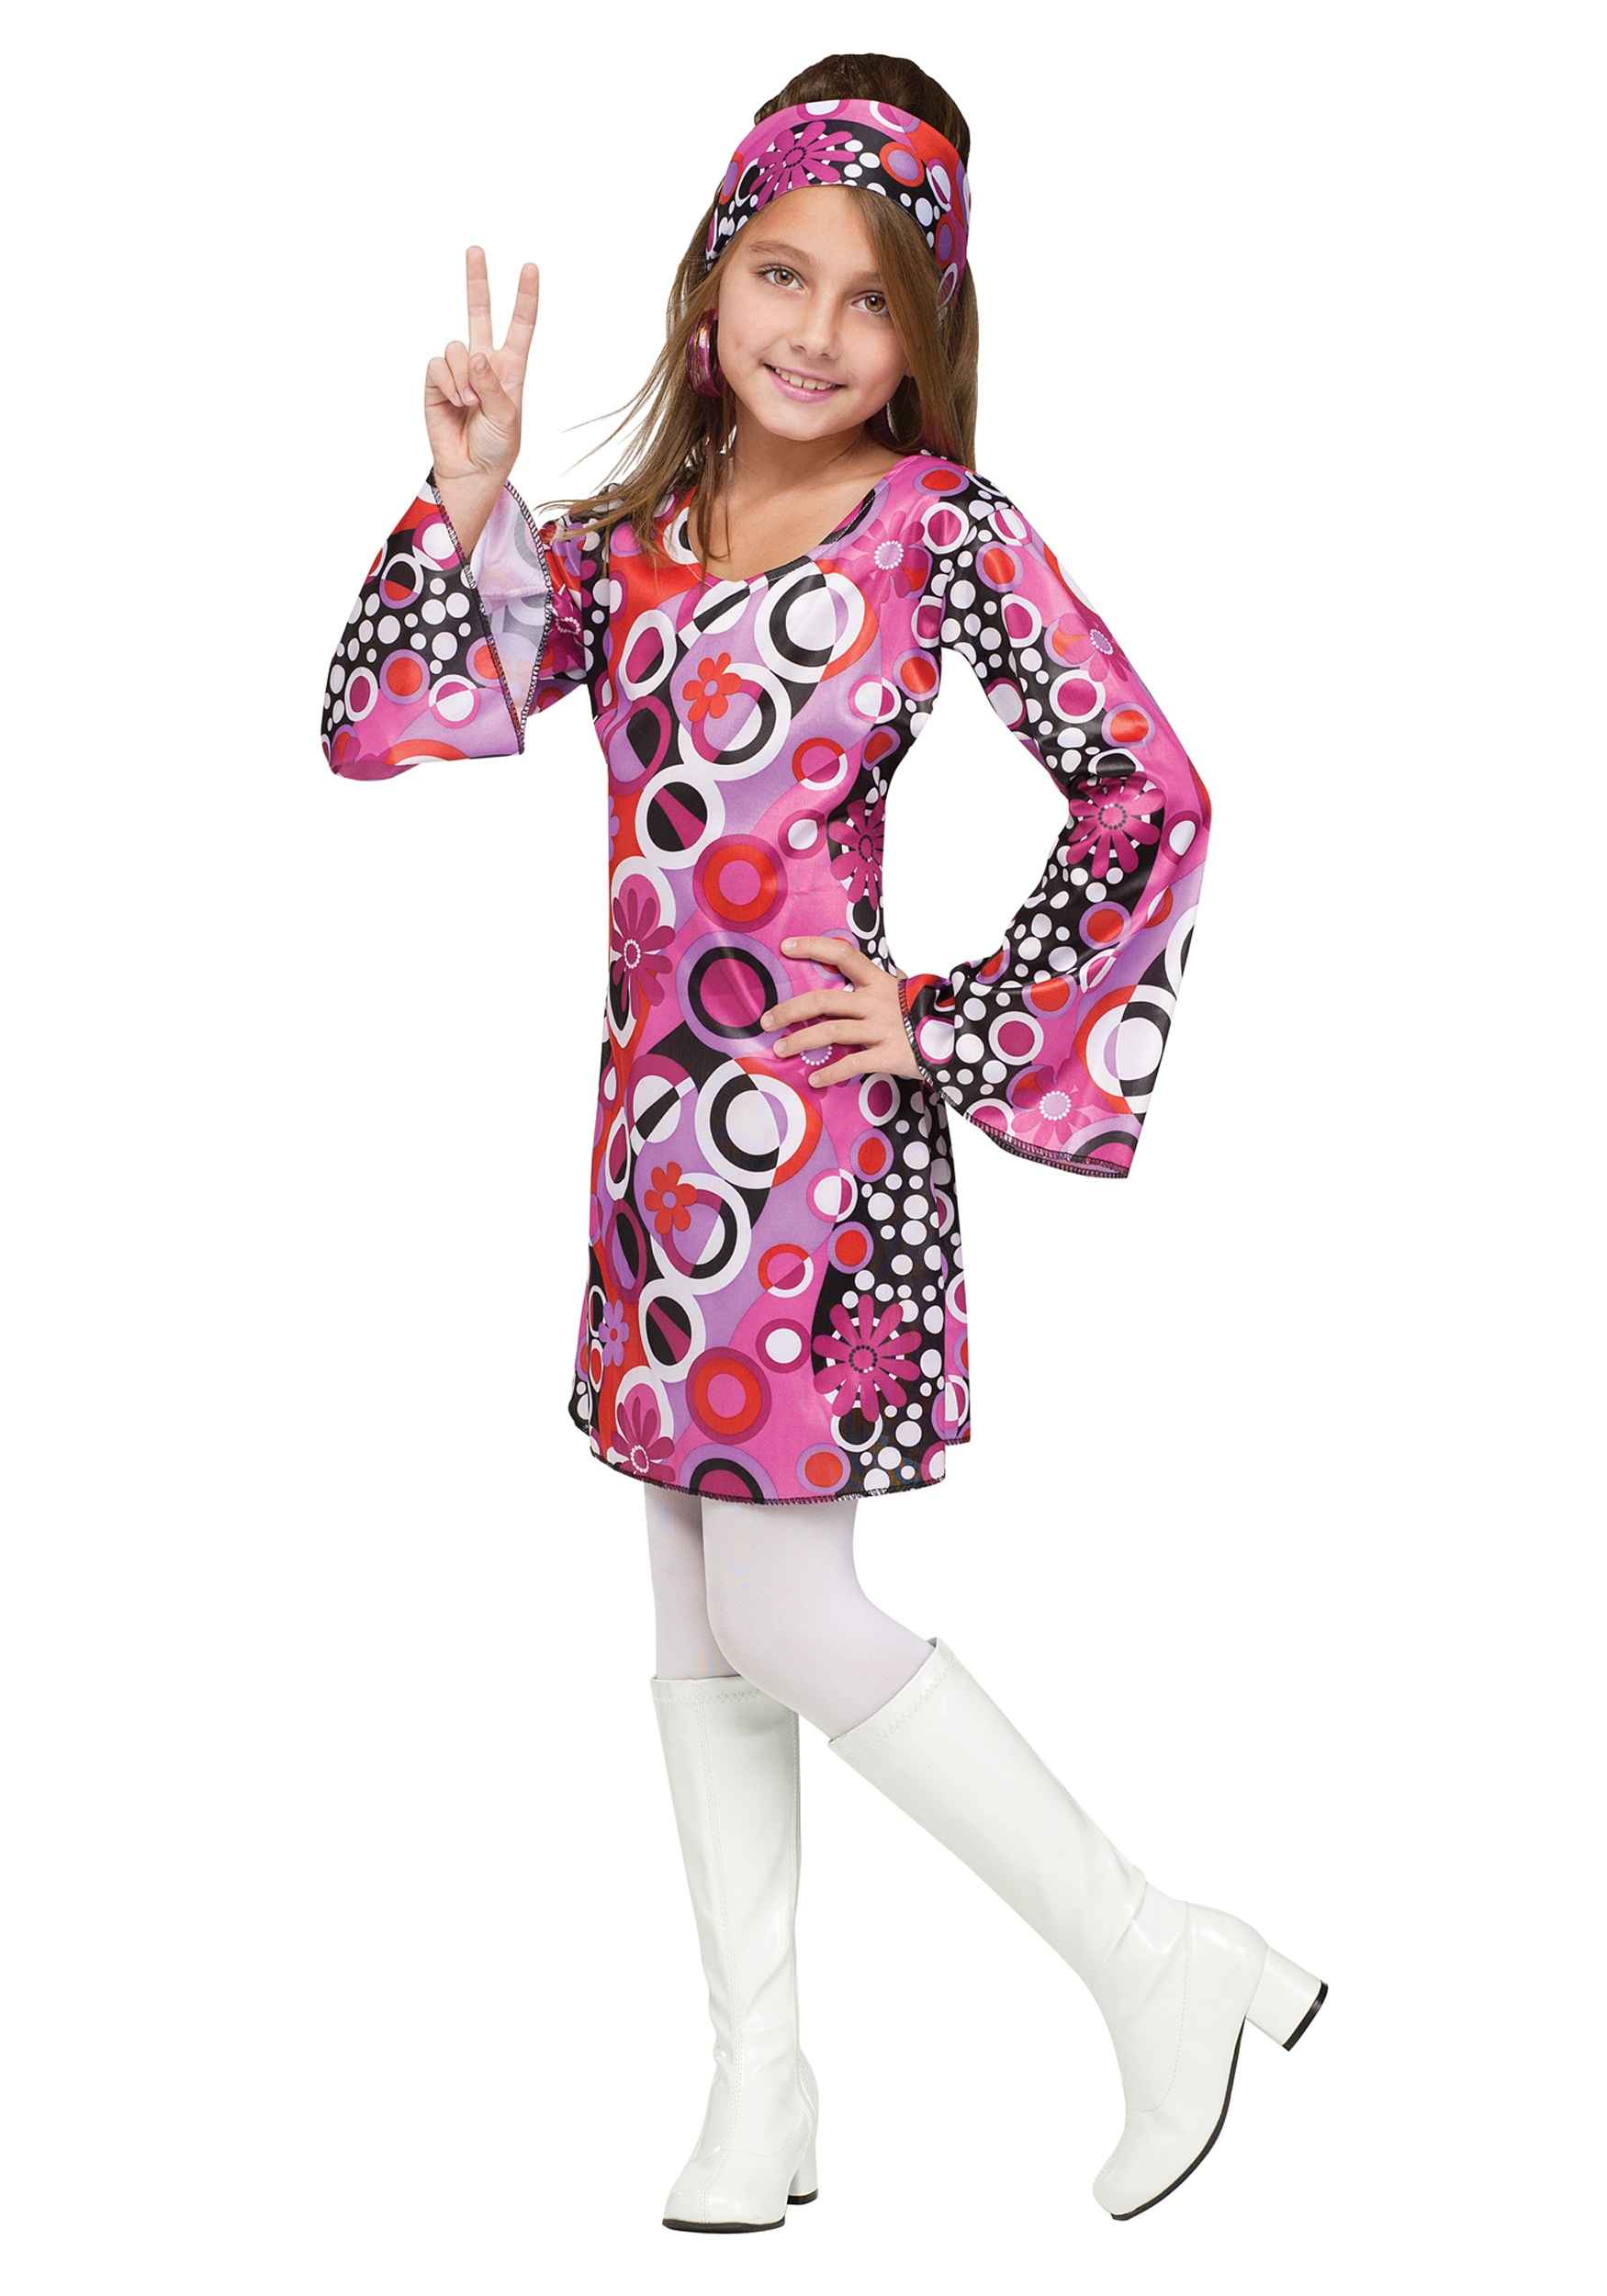 60's and 70's Costumes for Girls and Boys Go-go to the party in style with one of our groovy '60s and '70s costumes for kids and teens. Whether you favor the era of flower power or disco dancing, we have a costume to fit your youngster's needs.